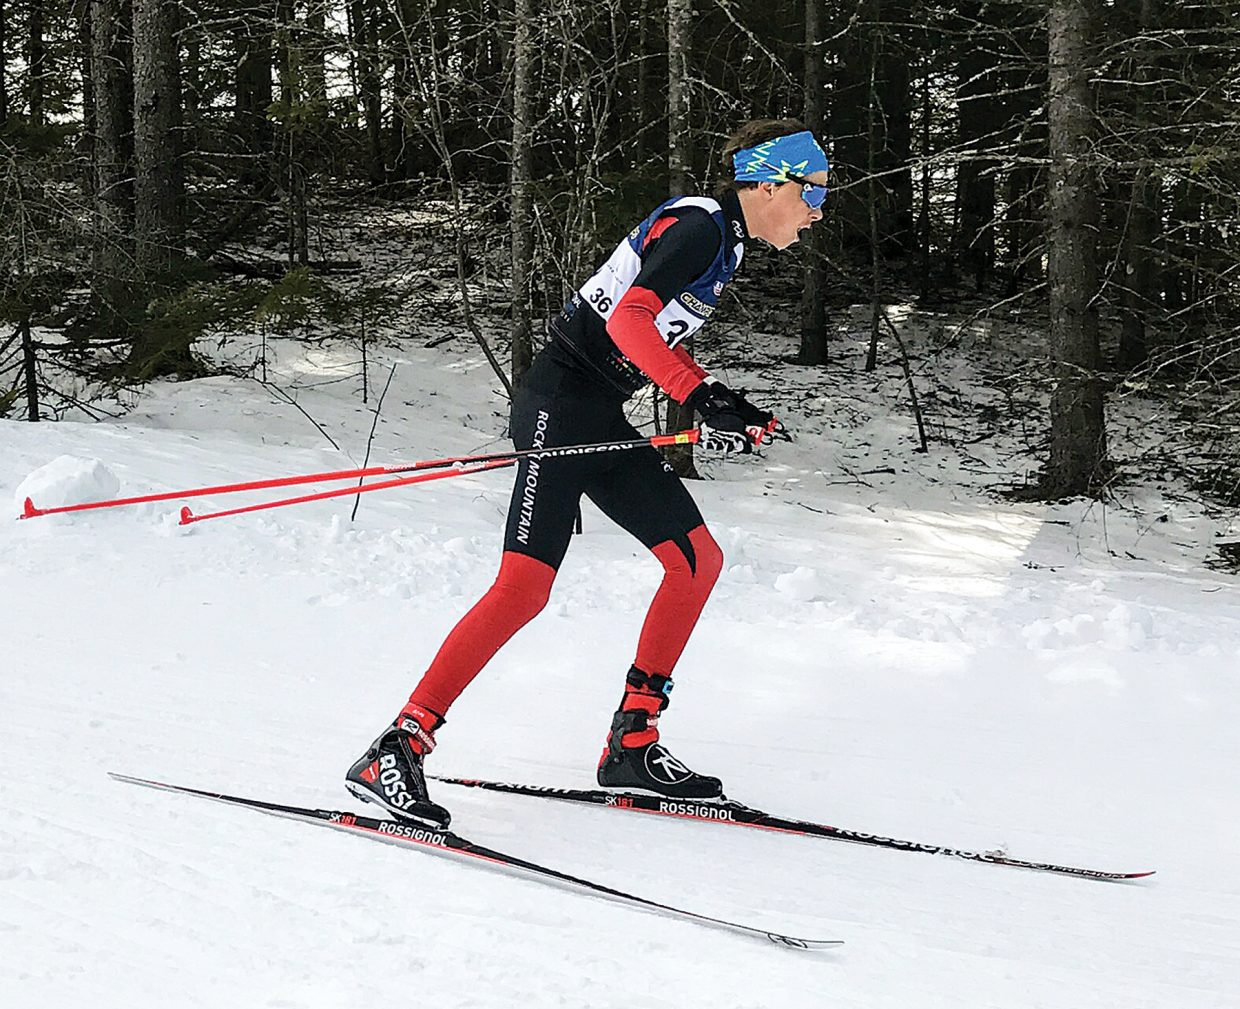 Sven Tate competes in the U18 boys 10-kilometer freestyle race at the USSA Cross Country Junior Nationals last week in Lake Placid, New York.